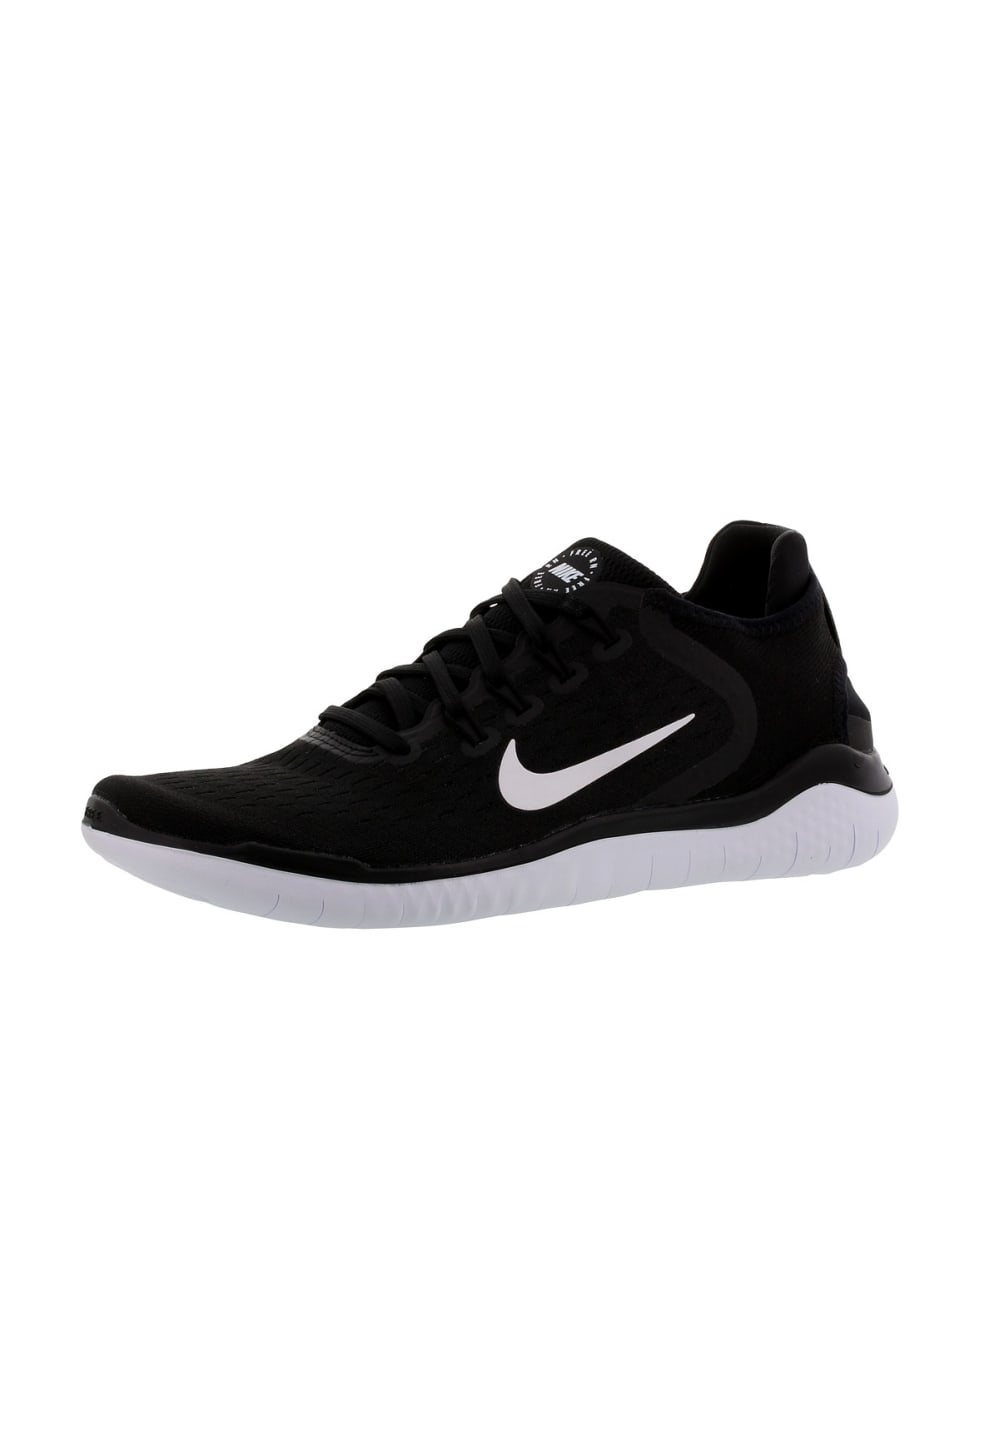 finest selection ffd47 b72f6 Nike Free RN 2018 - Running shoes for Women - Black